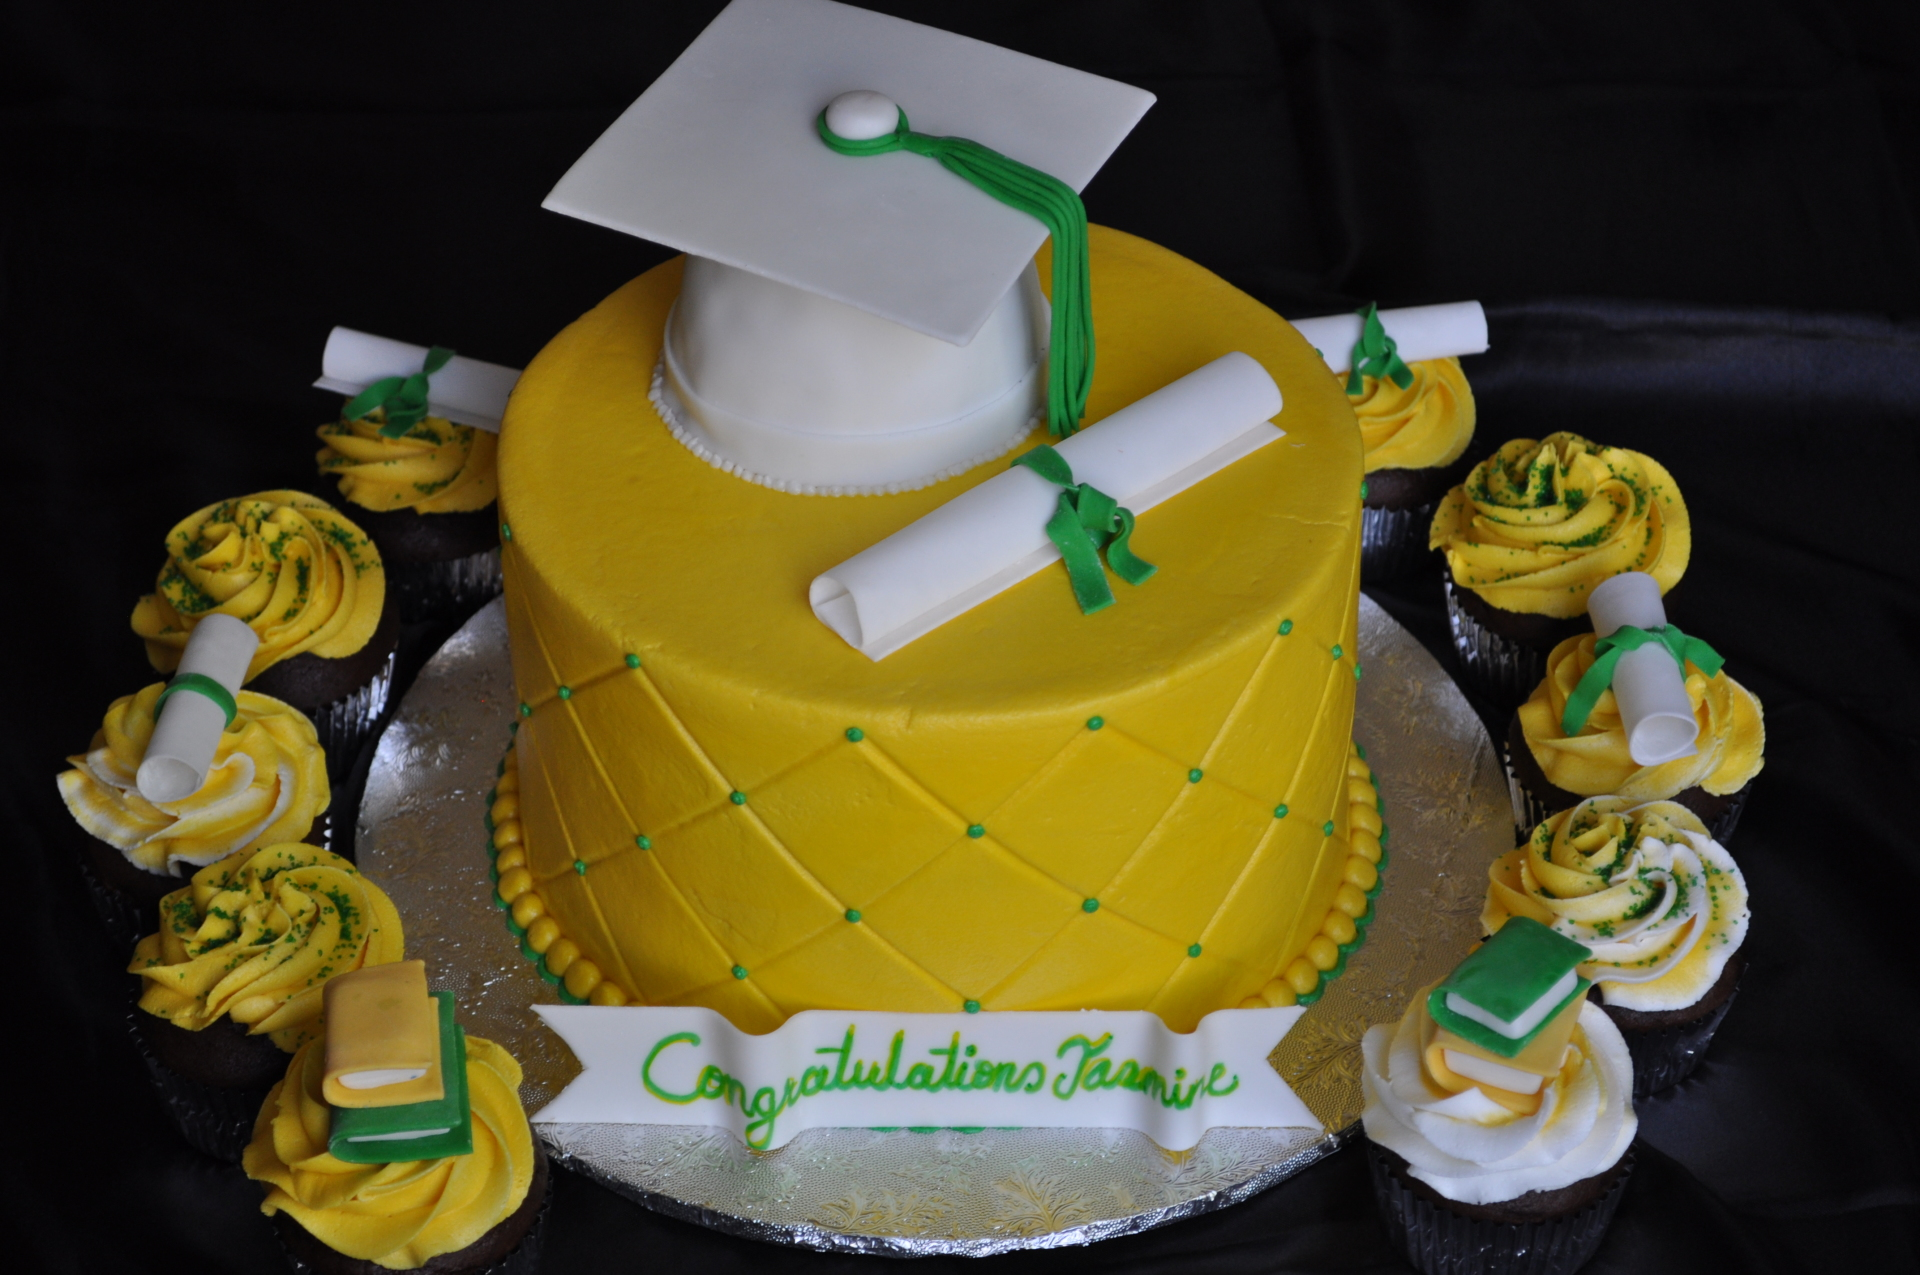 Graduation hat diploma and cupcakes in yellow and green